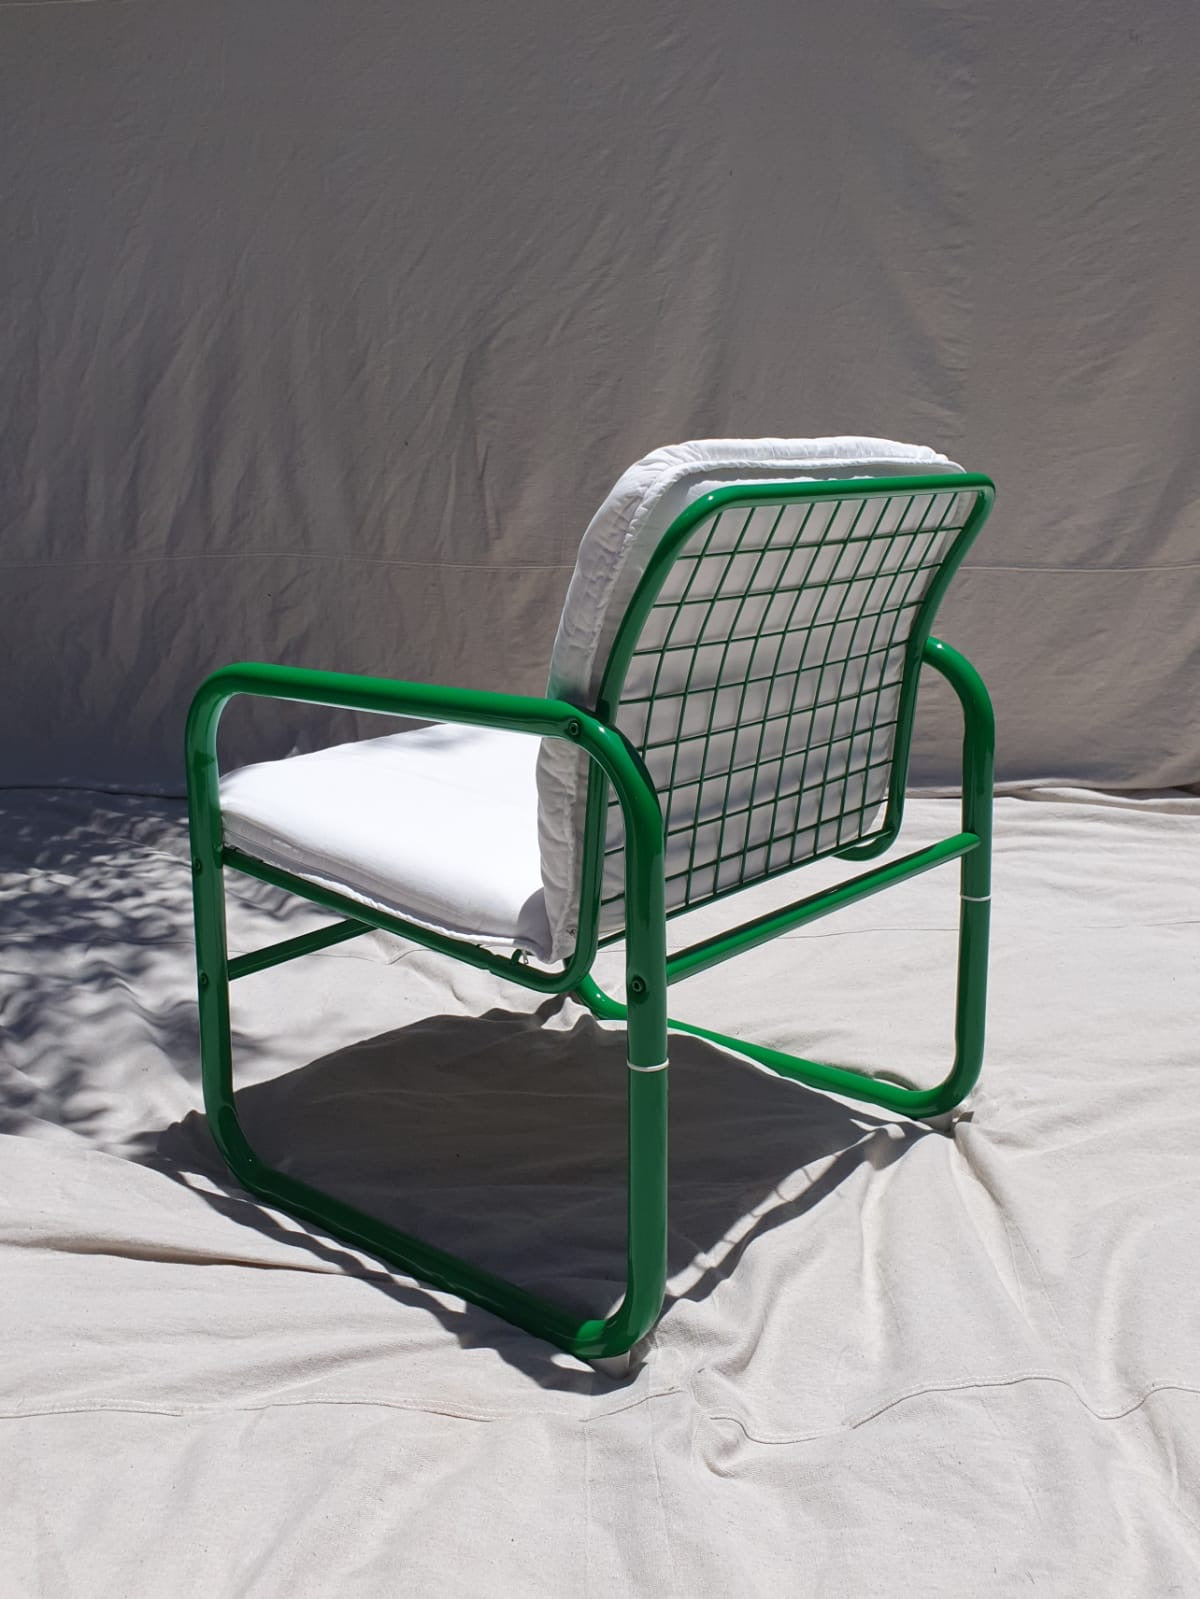 80s Ikea Mölle Chair by Knut and Marianne Hagberg